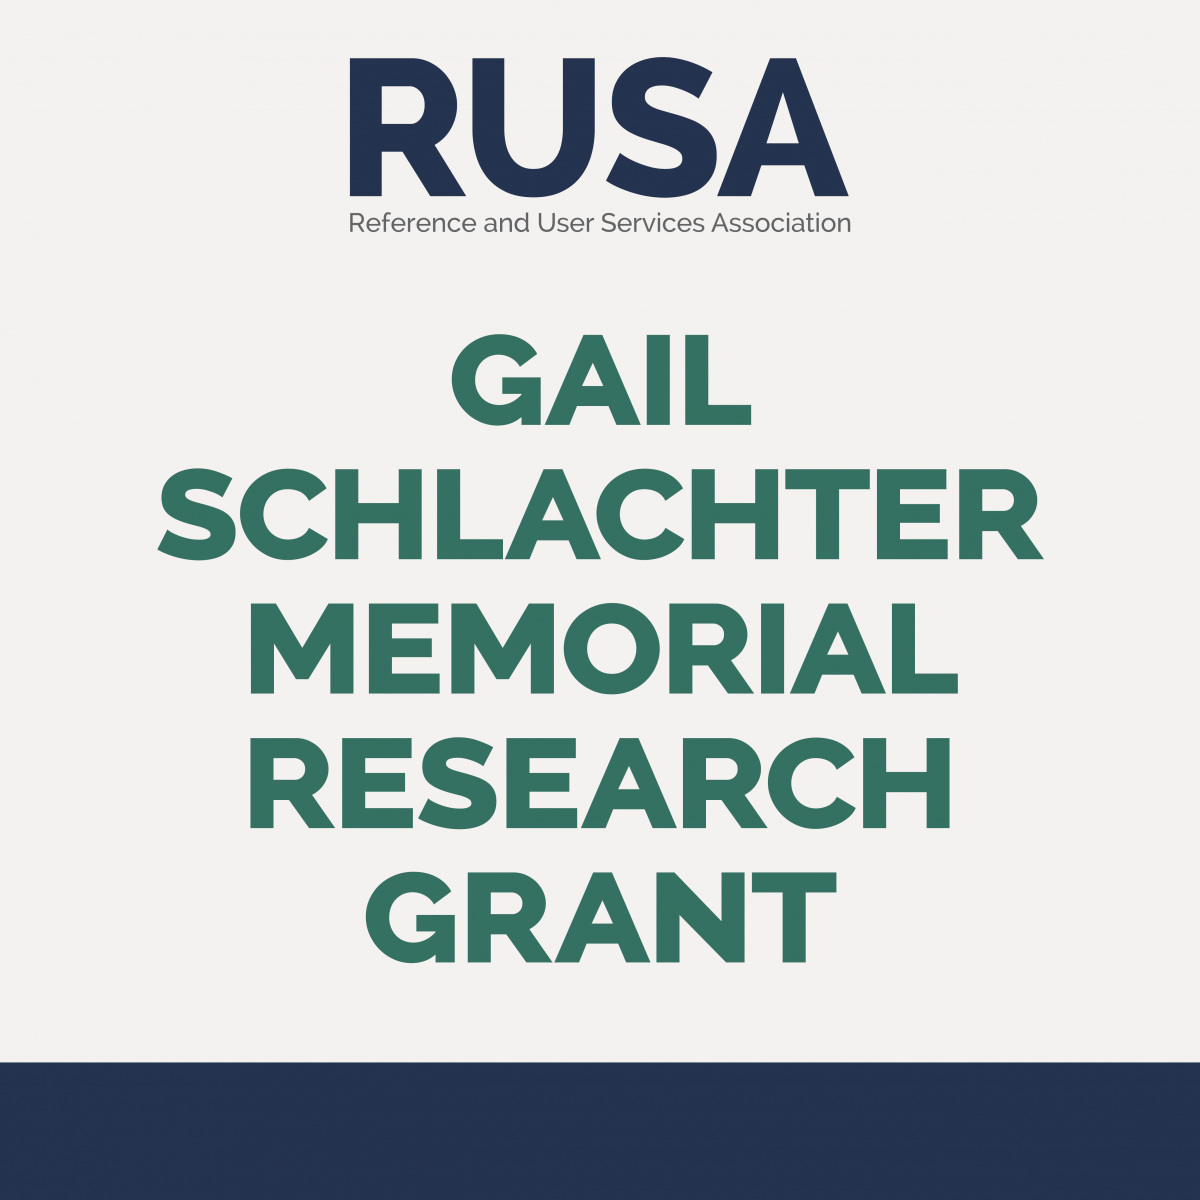 RUSA Gail Schlachter Memorial Research Grant